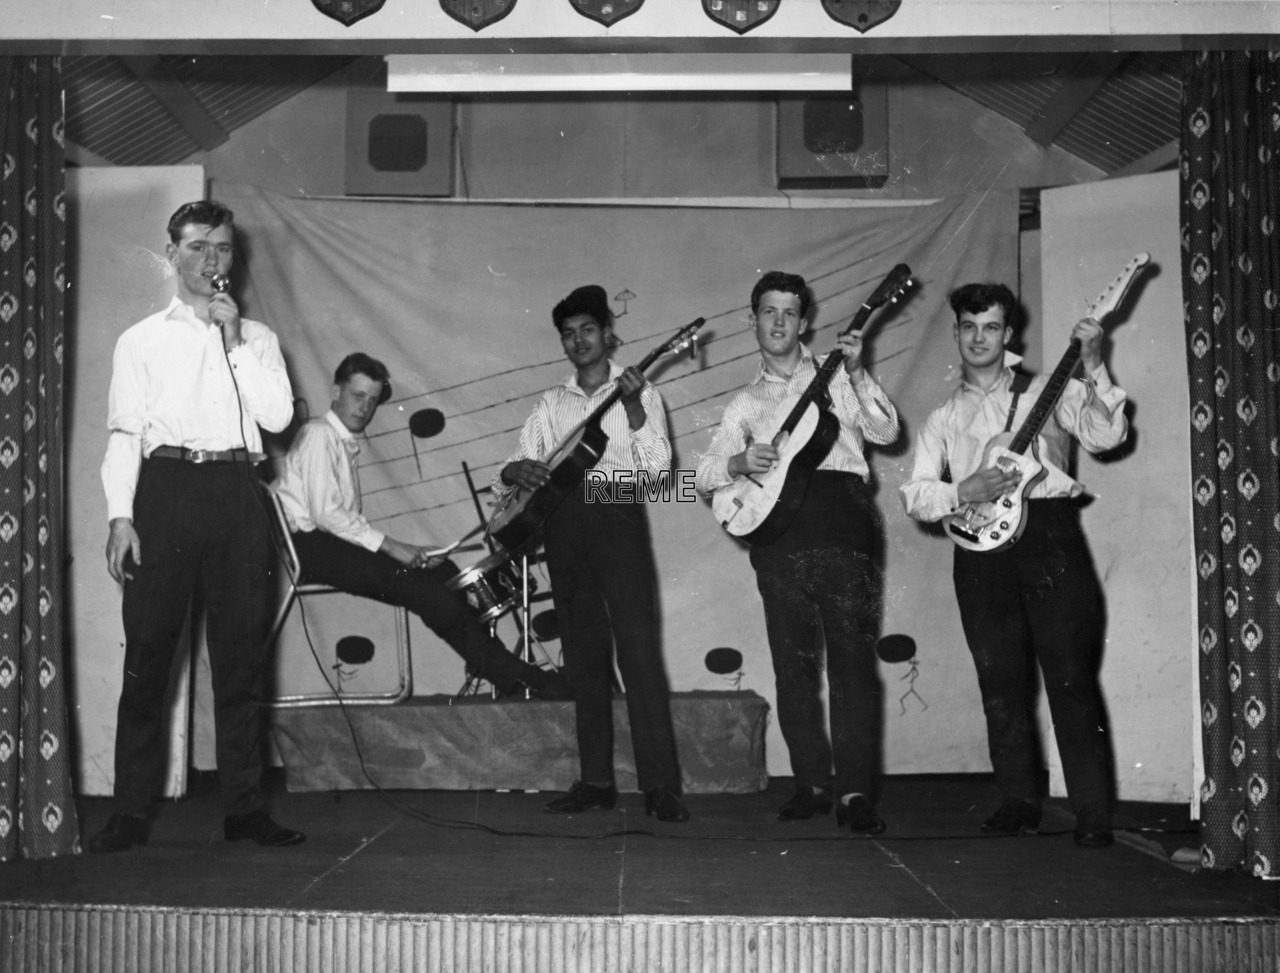 Junior Leaders' Unit, REME: Concert Party 1963